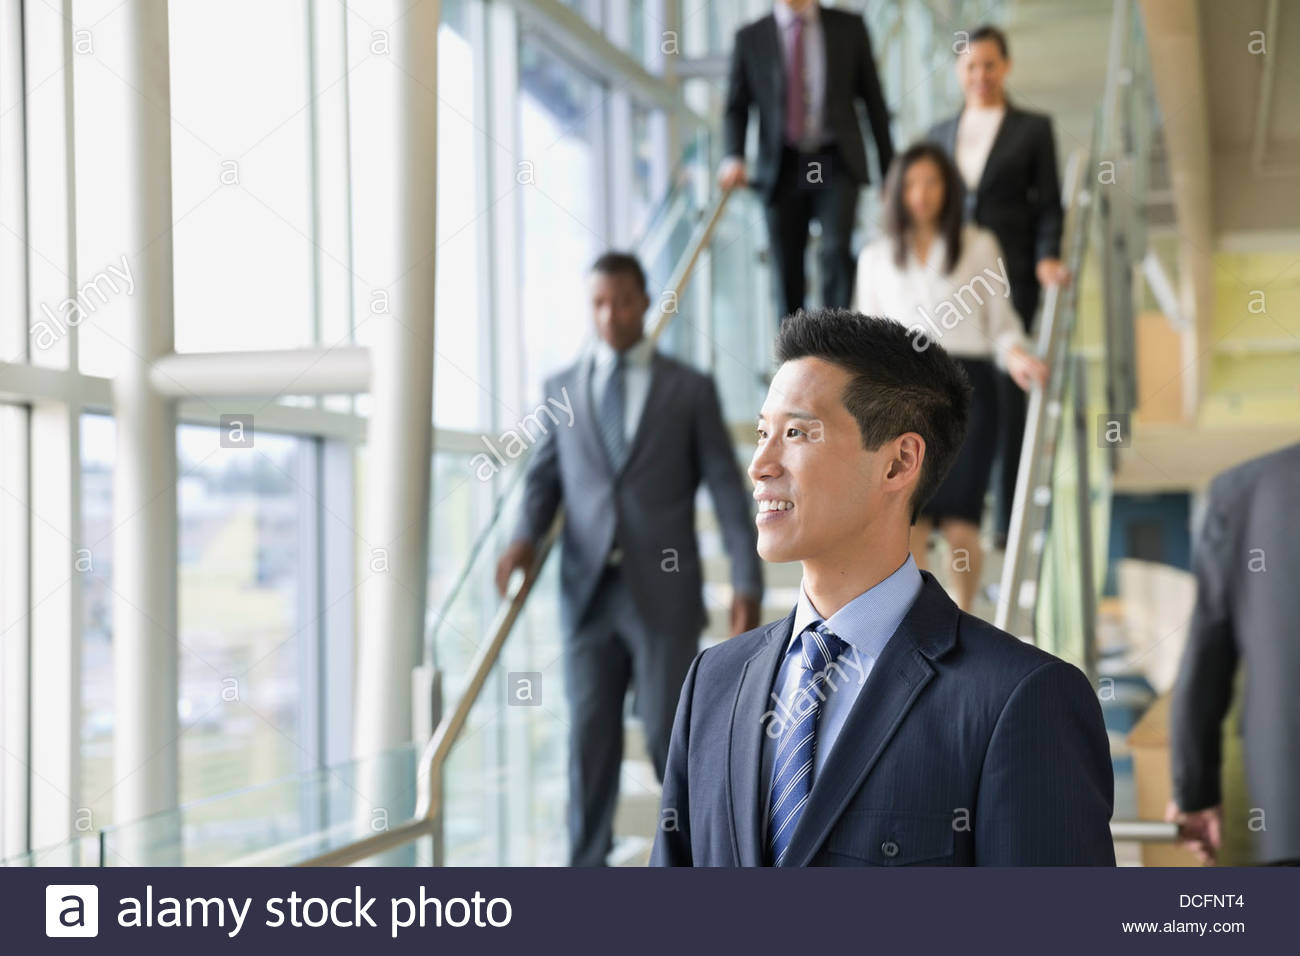 Smiling businessman looking away in office building - Stock Image